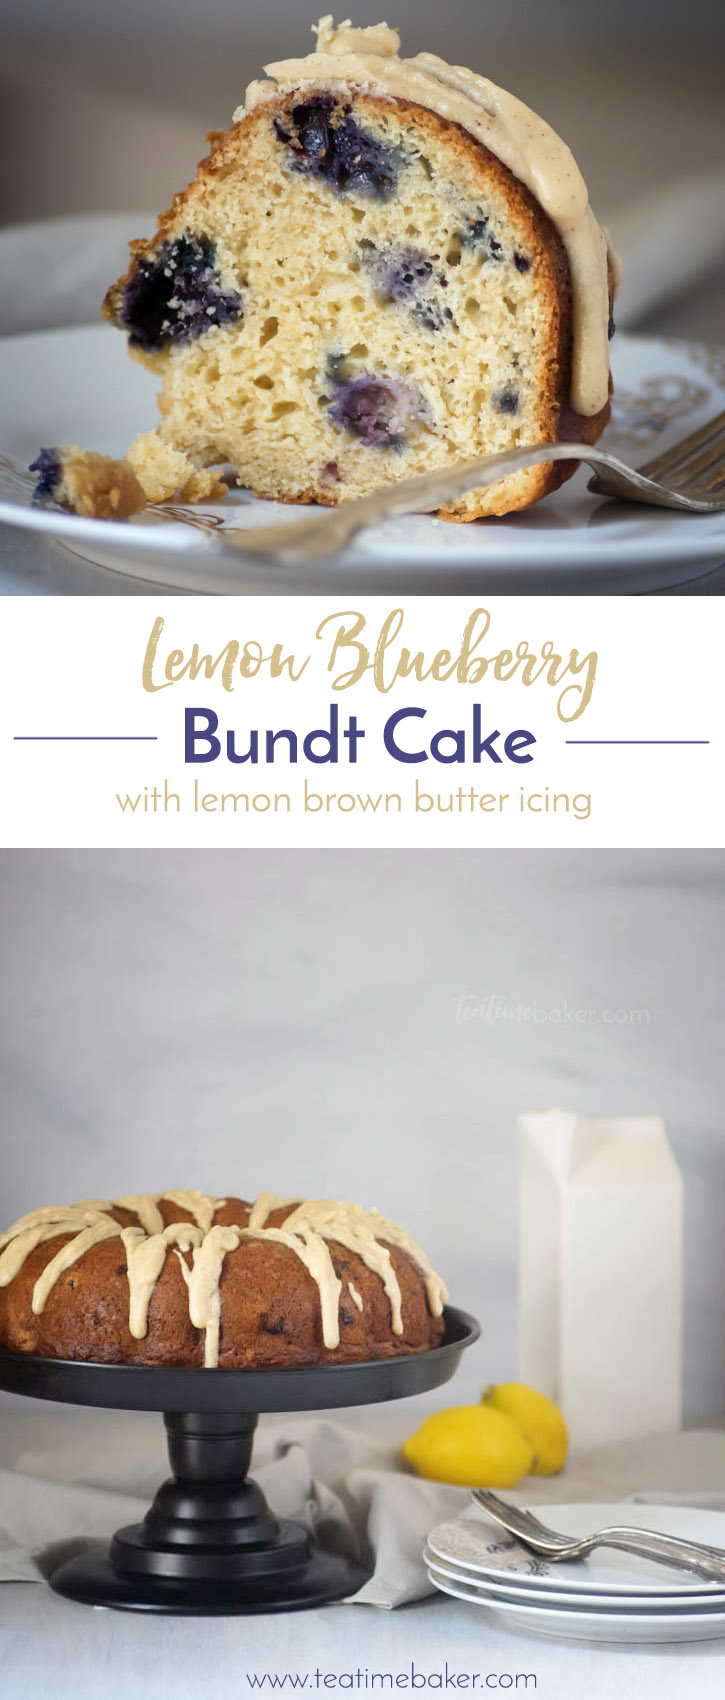 Lemon Blueberry Bundt Cake with Lemon Brown Butter Glaze